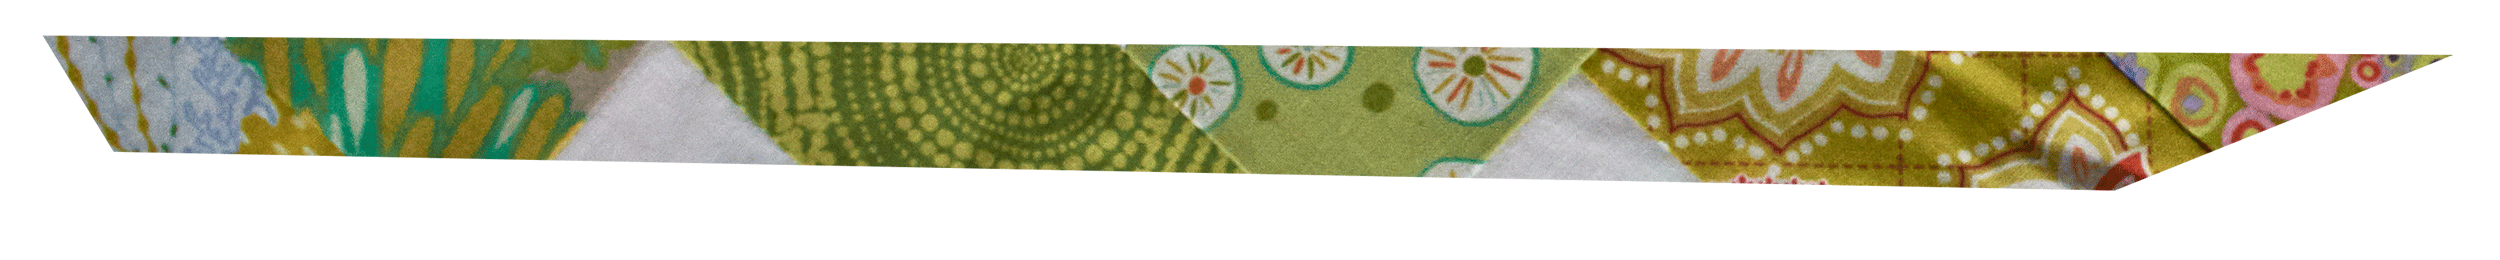 chartreuse_zigzag_fabric_2.png